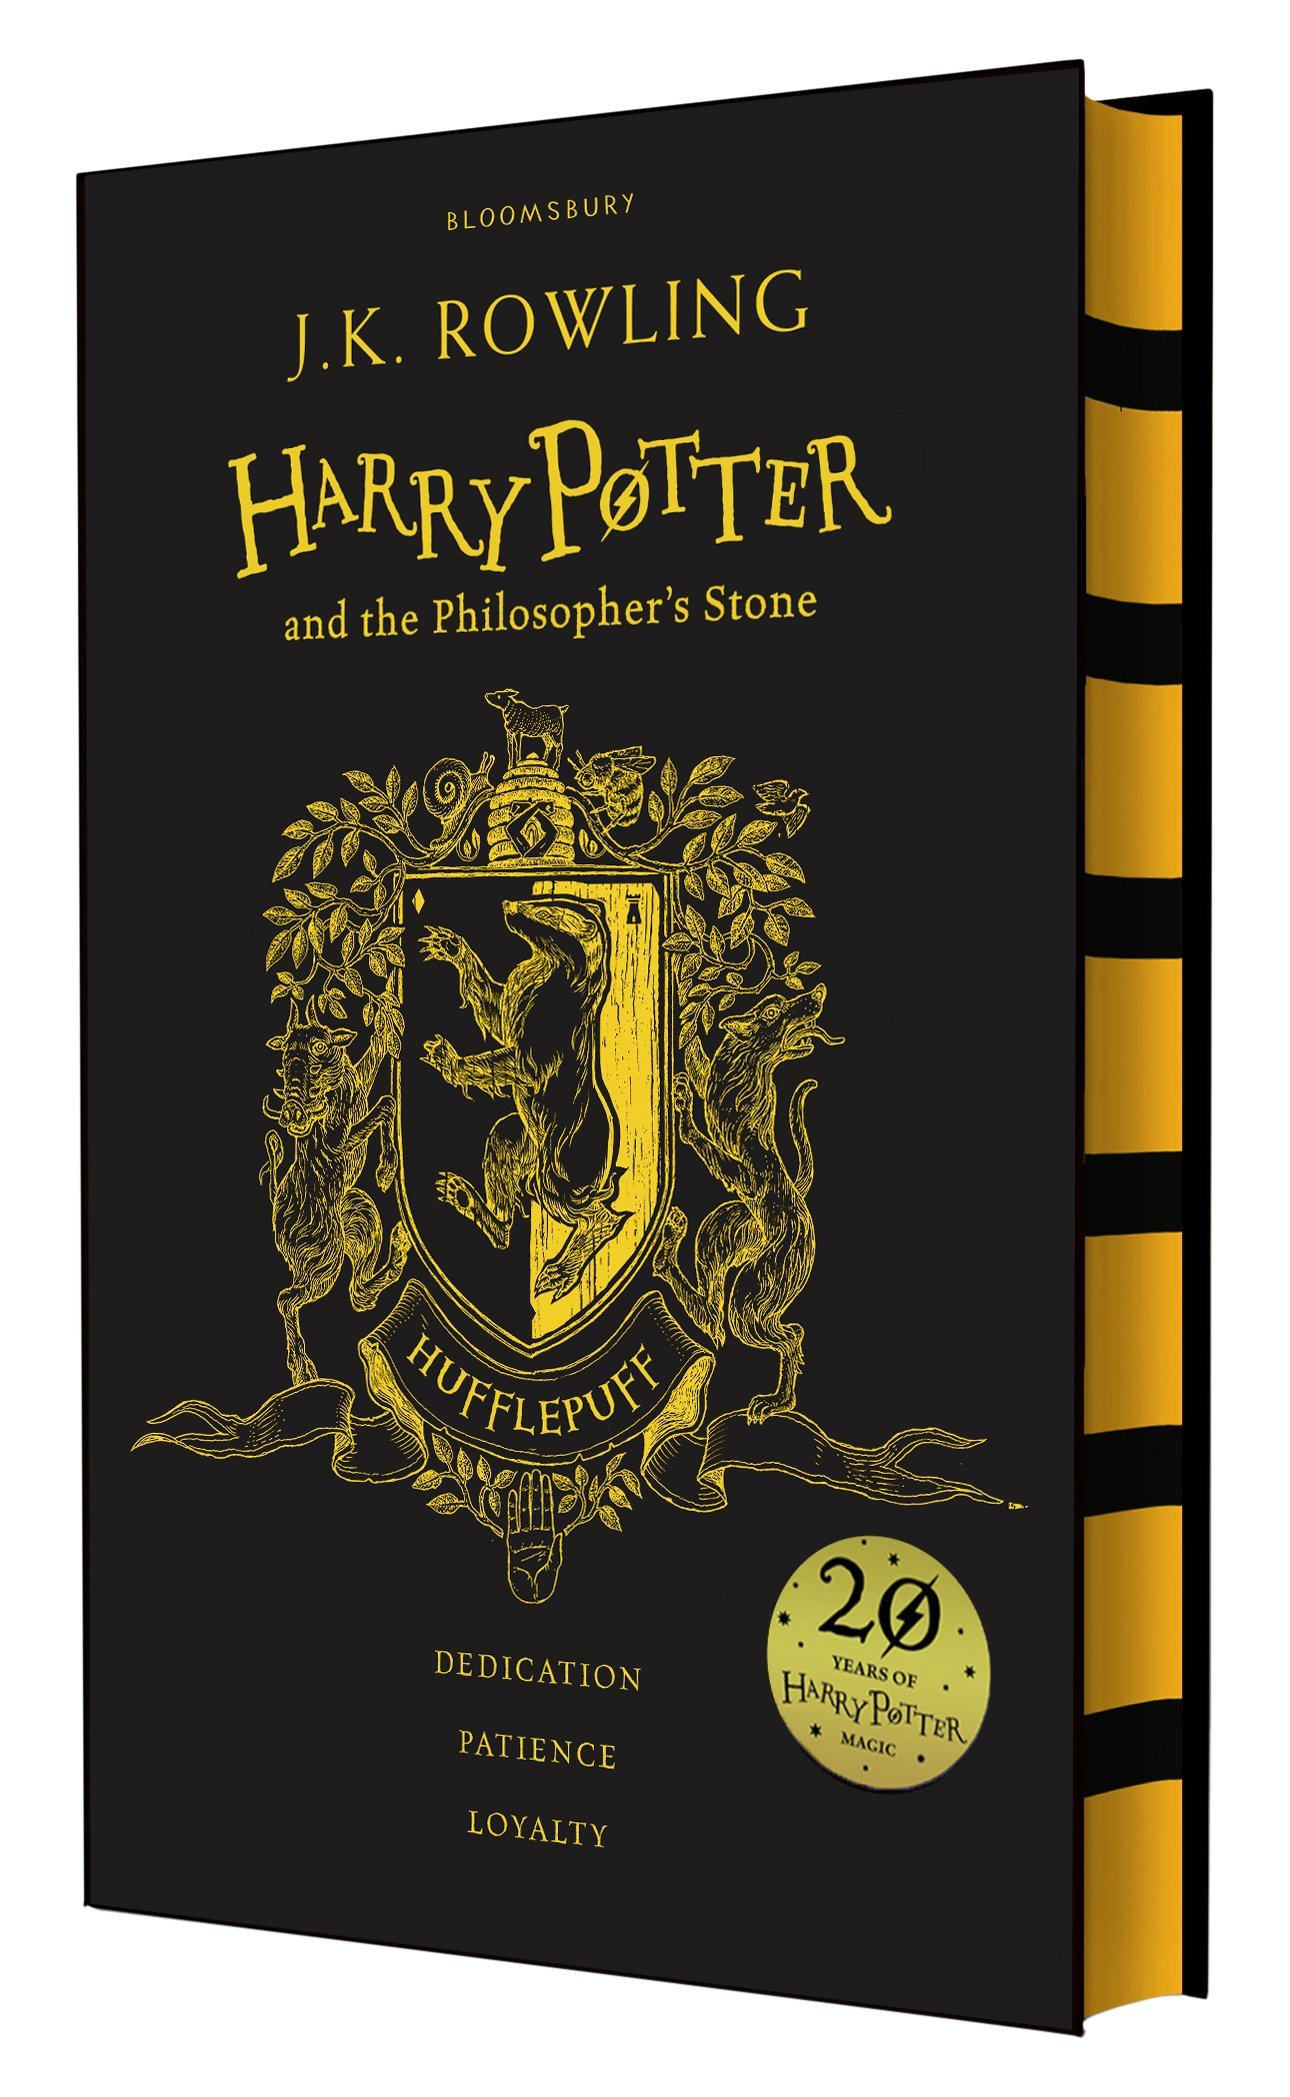 hufflepuff edition harry potter and the philosopher 39 s stone fantasium. Black Bedroom Furniture Sets. Home Design Ideas